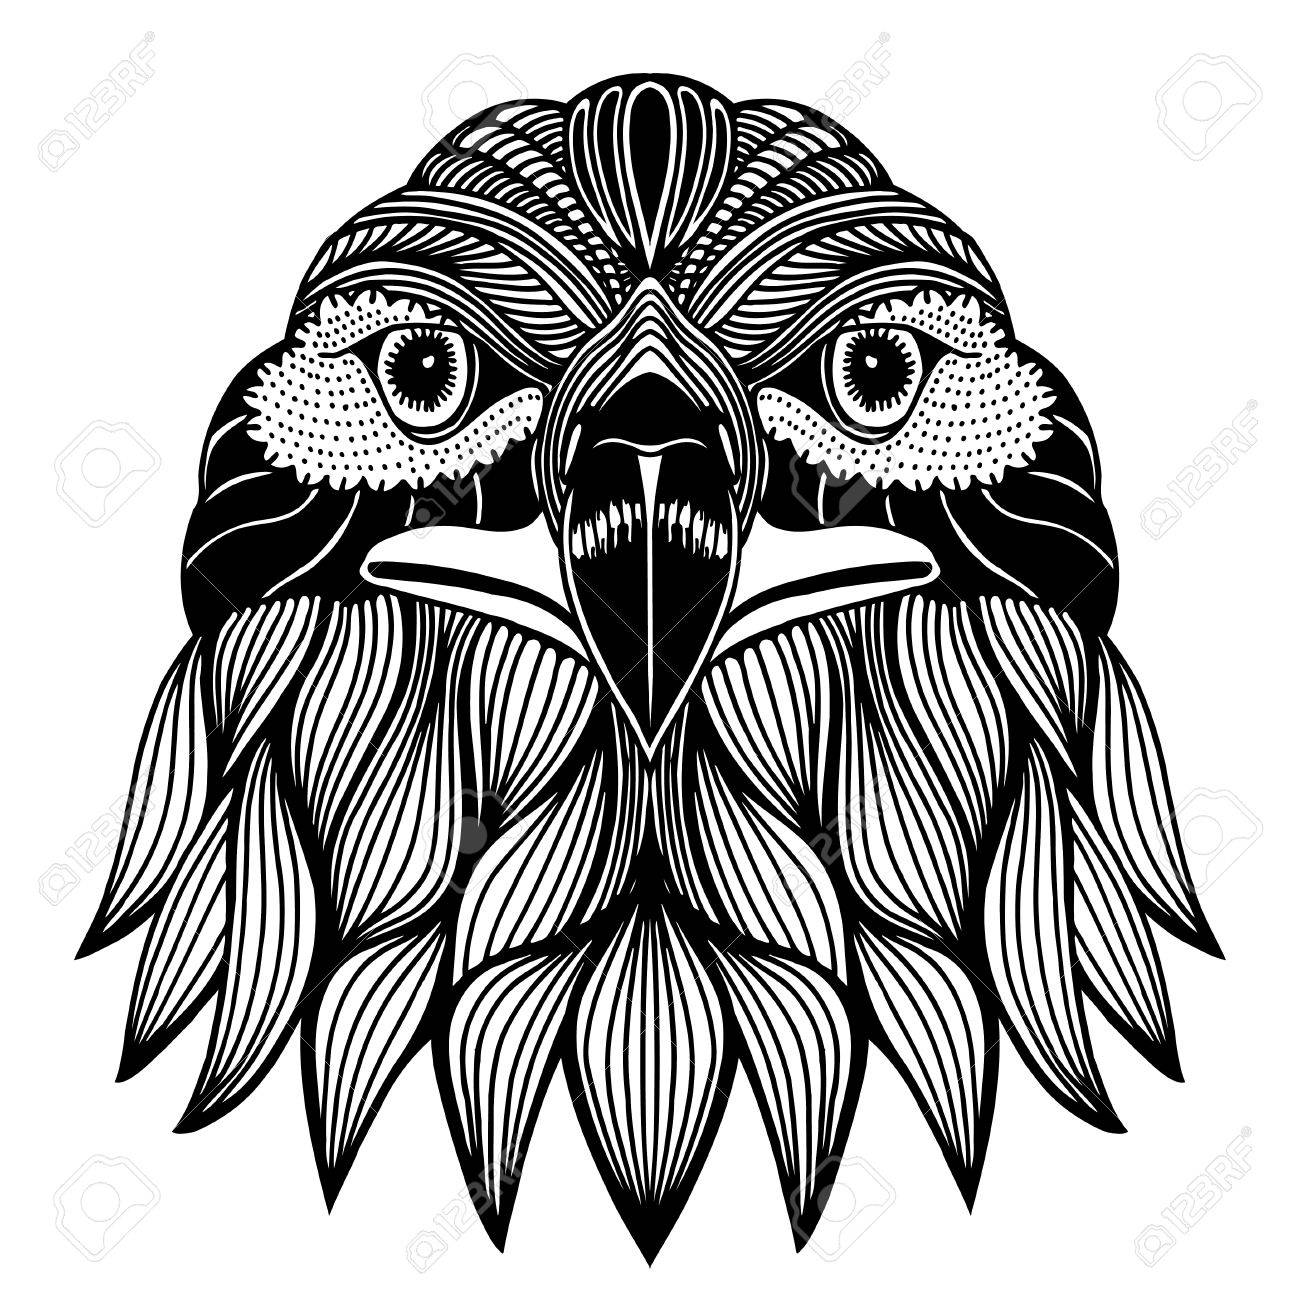 1300x1300 Hand Drawn Head Of Eagle. Doodle Vector Illustration Isolated